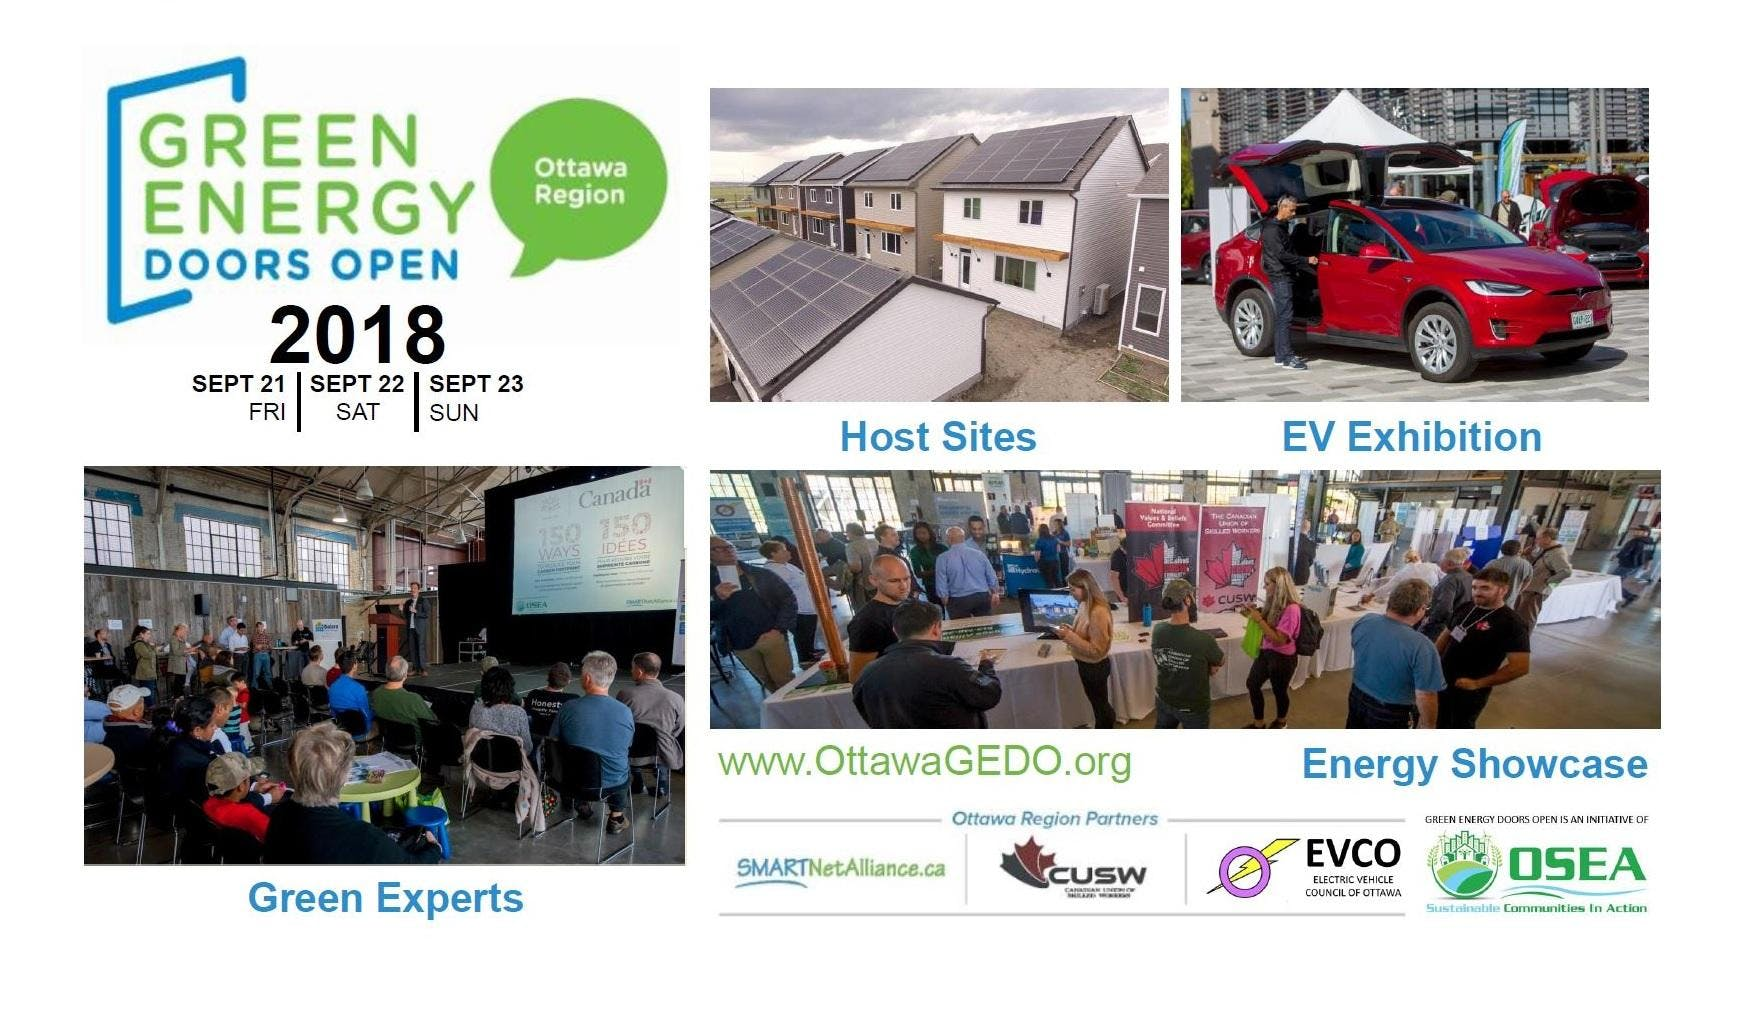 Green Energy Doors Open Ottawa 2018 - Energy